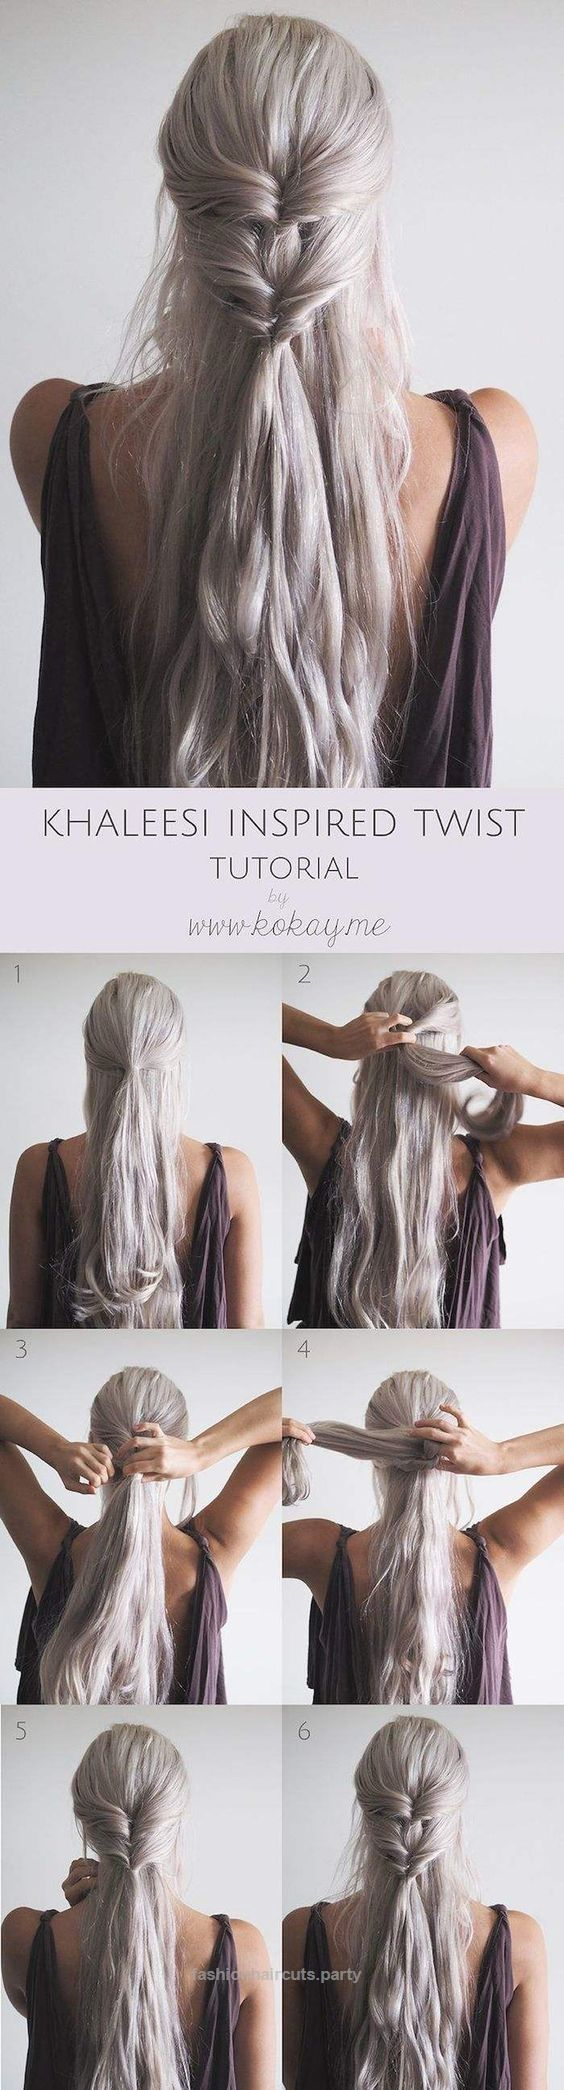 [tps_header]Is a braided crown hairstyle a look you want to try? Do you think a … [tps_header]Is a braided crown hairstyle a look you want to try? Do you think a perfect braided crown hairstyle is too difficult for you to do on .. http://www.fashionhaircuts.party/2017/06/12/tps_headeris-a-braided-crown-hairstyle-a-look-you-want-to-try-do-you-think-a/